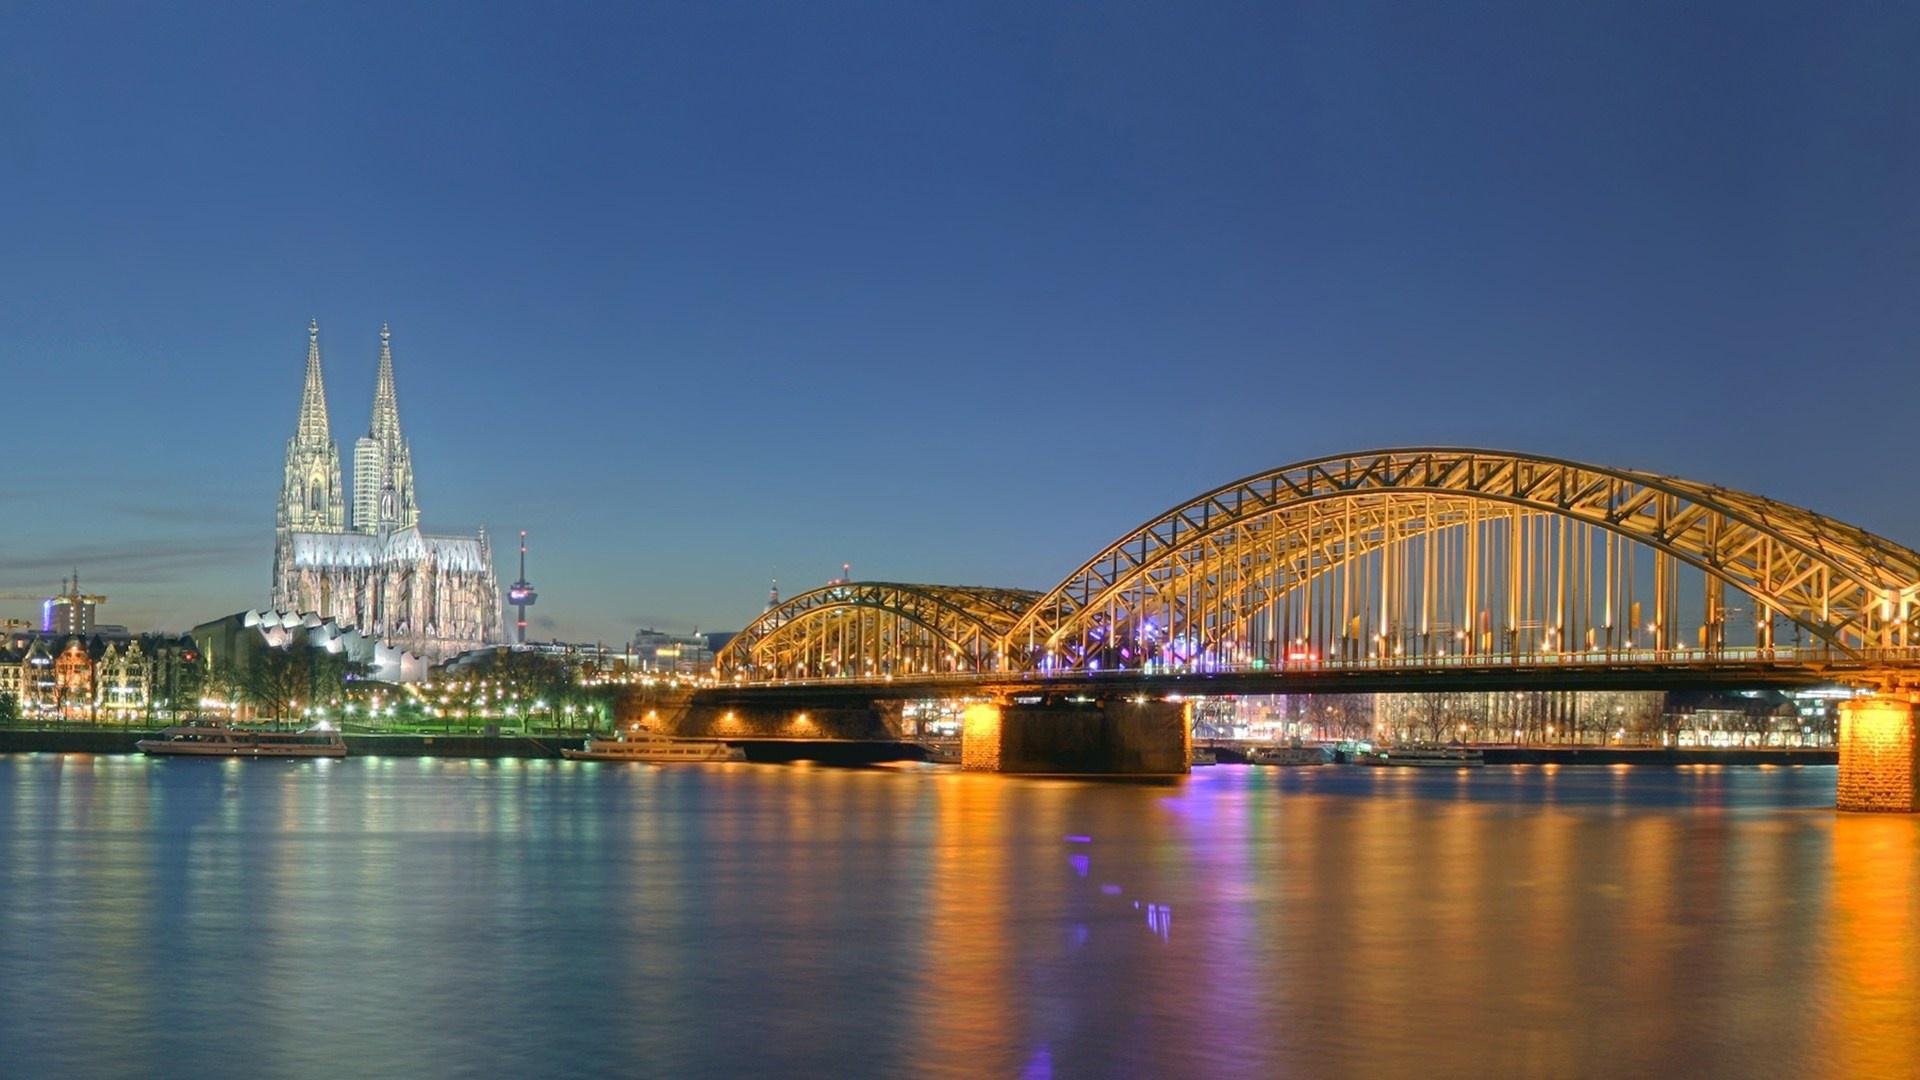 Desktop Wallpaper Hd 3d Full Screen Baby Keulen Duitsland Stad Nachtverlichting Brug Kathedraal